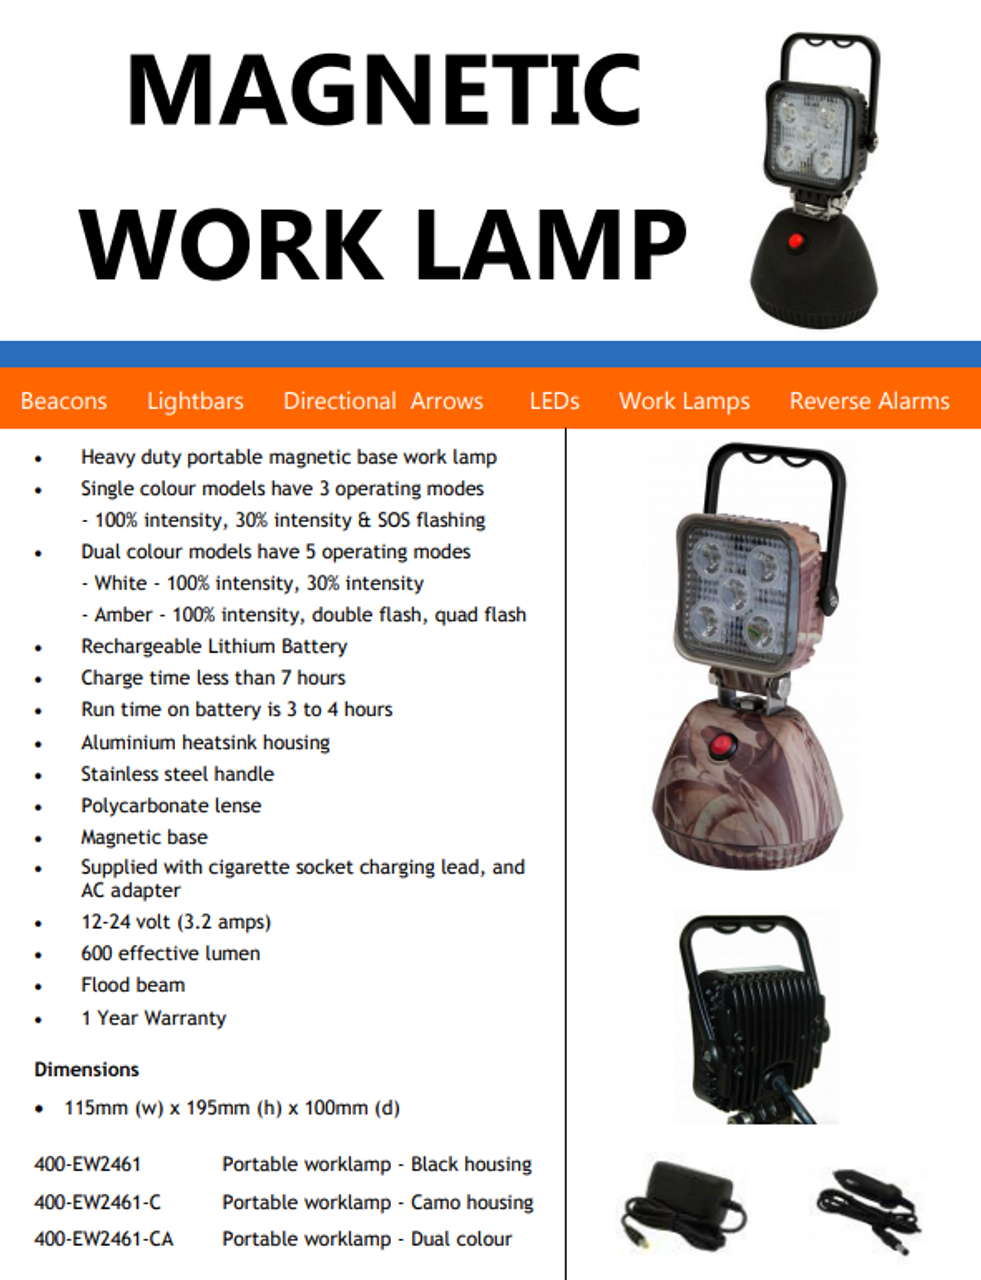 Portable Flood Light, Battery Operated, Magnetic Mount, Rechargeable, LED Work Light, 15 watt.  Complete Package. Camo Colour Housing. EW2461-CAMO-AU.